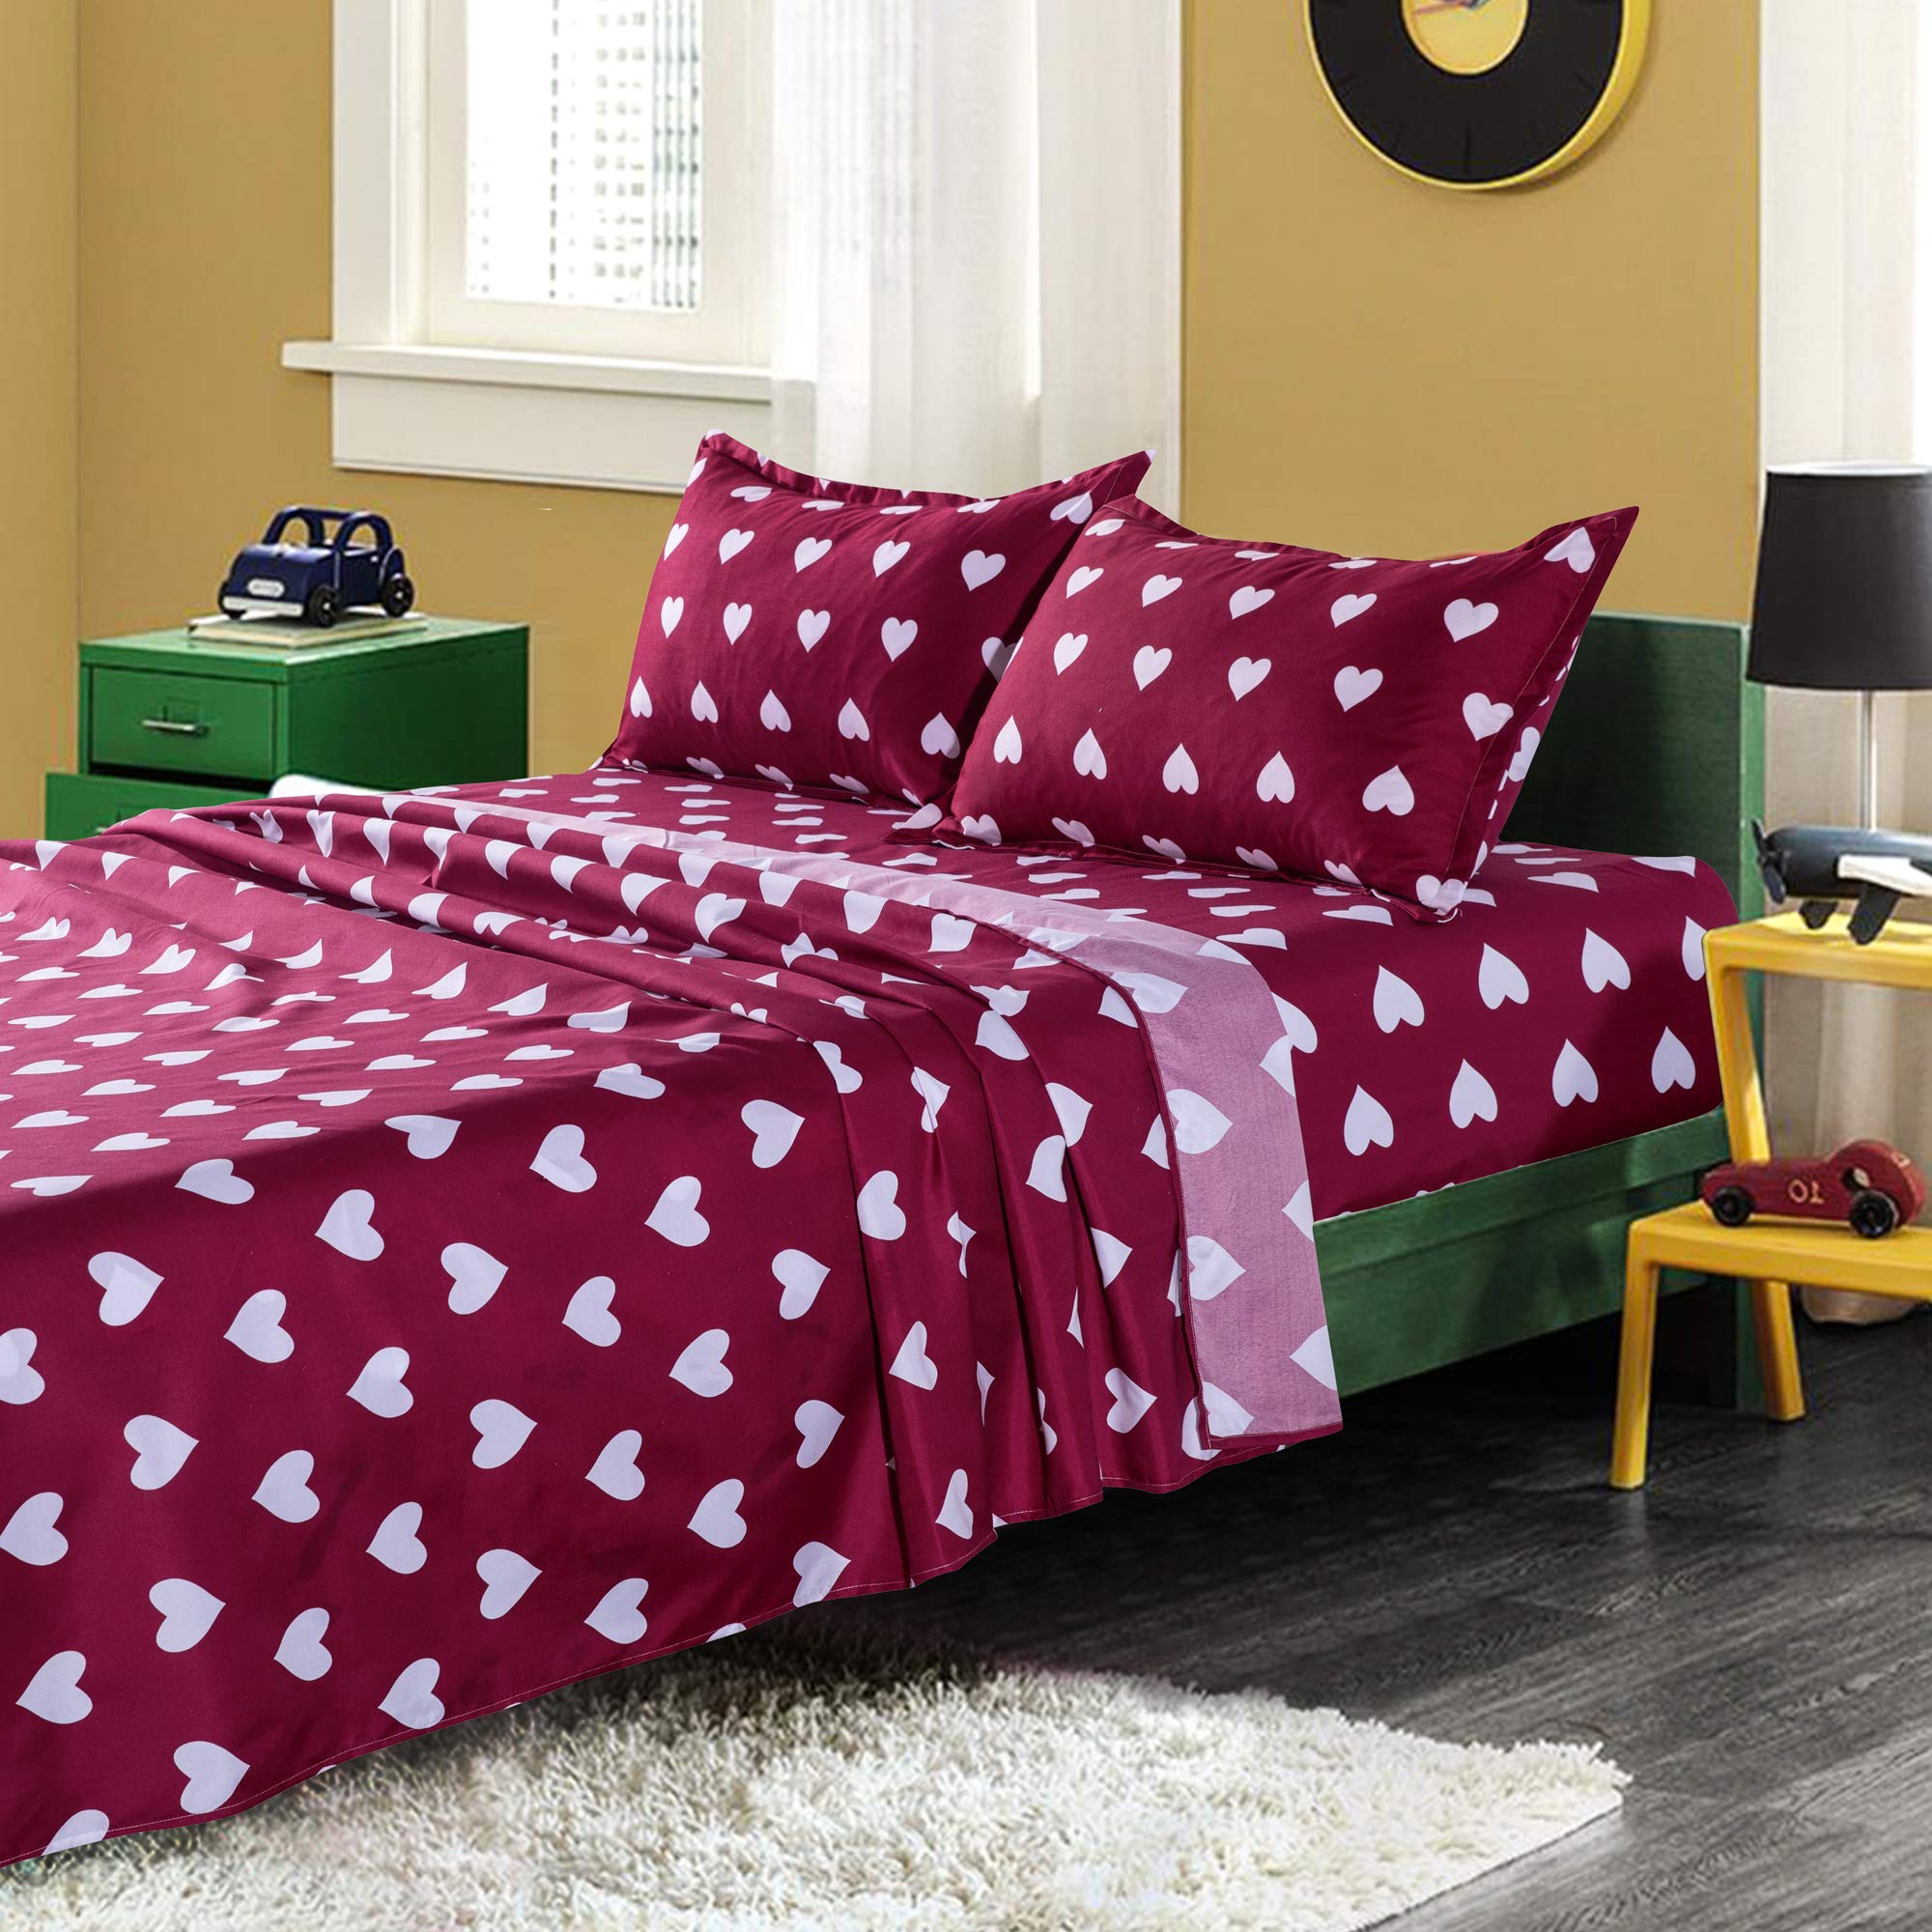 KFZ Twin Bed Sheets Set -Red Color Love Themed Heart Shaped Printed 3Piece Bed Set with 1 Fitted Sheet, 1 Flat Sheet, 1 Pillowcase-Soft Egyptian Quality Brushed Microfiber Bedding Set by KFZ